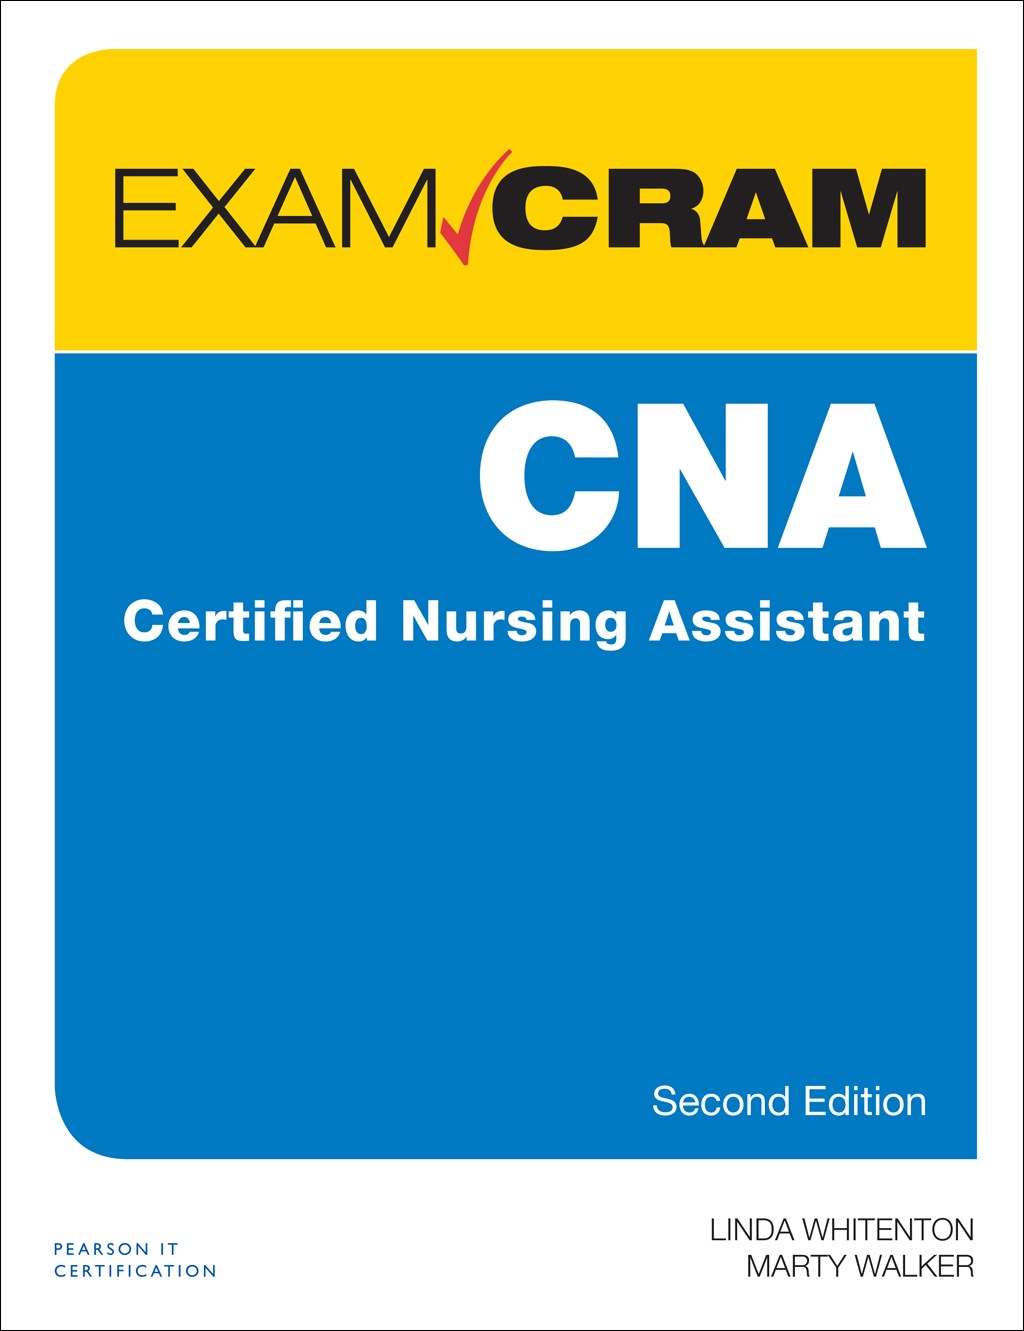 Cna Certified Nursing Assistant Exam Cram 2nd Edition Pearson It